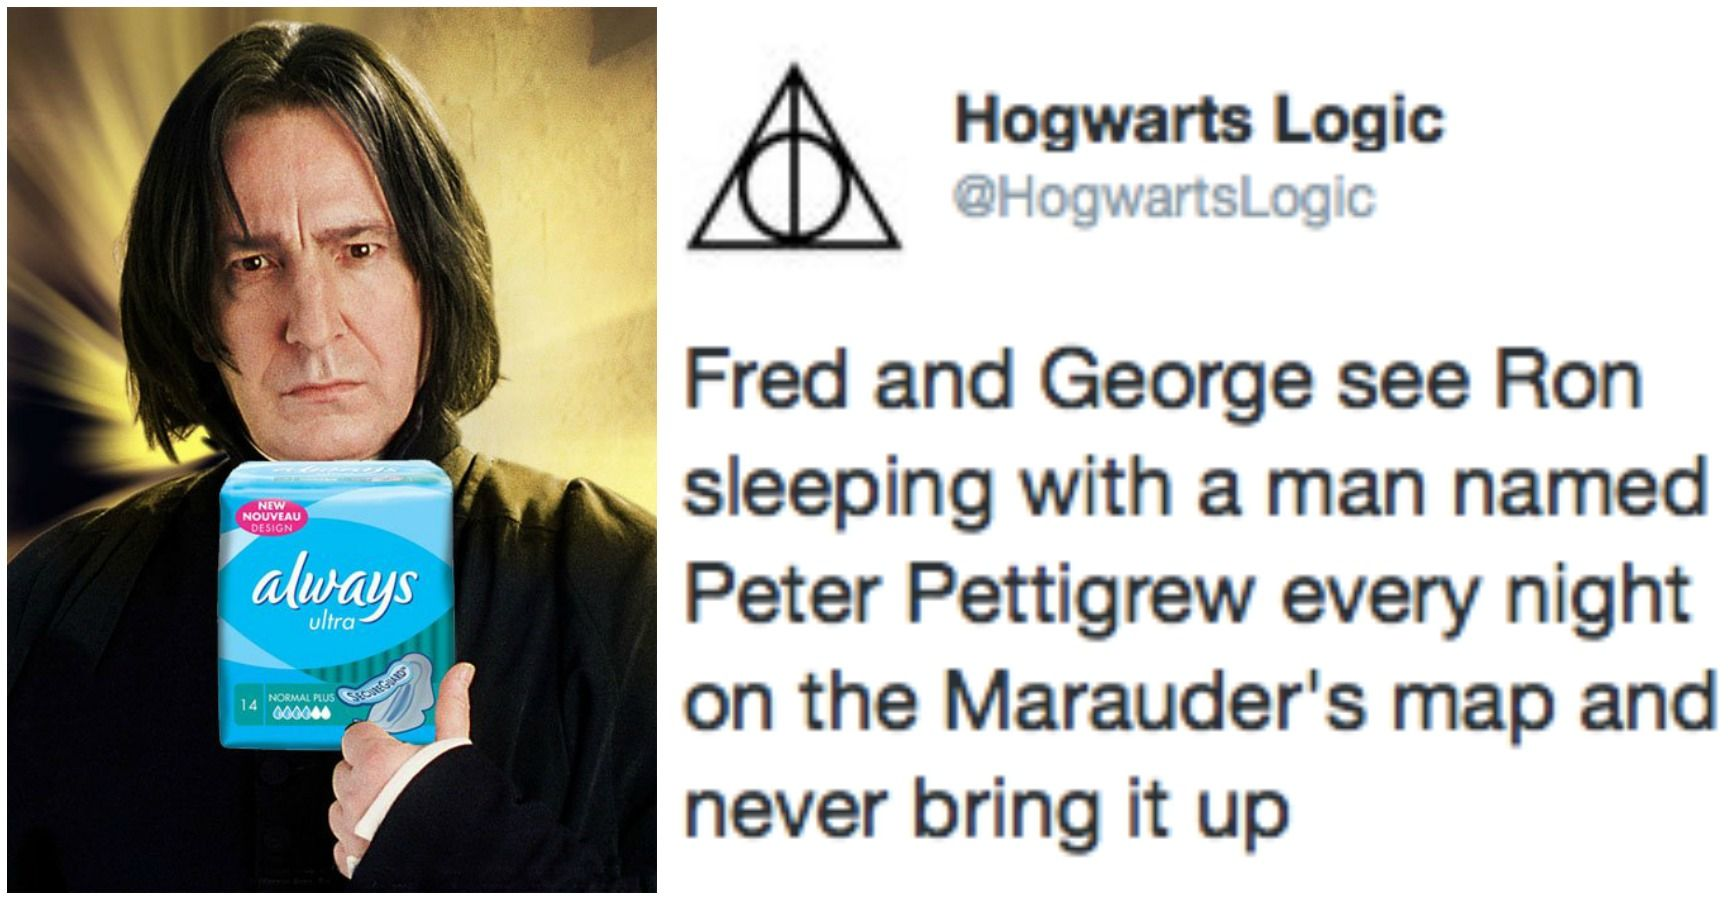 15 Hilariously Inappropriate Harry Potter Tumblr Posts That